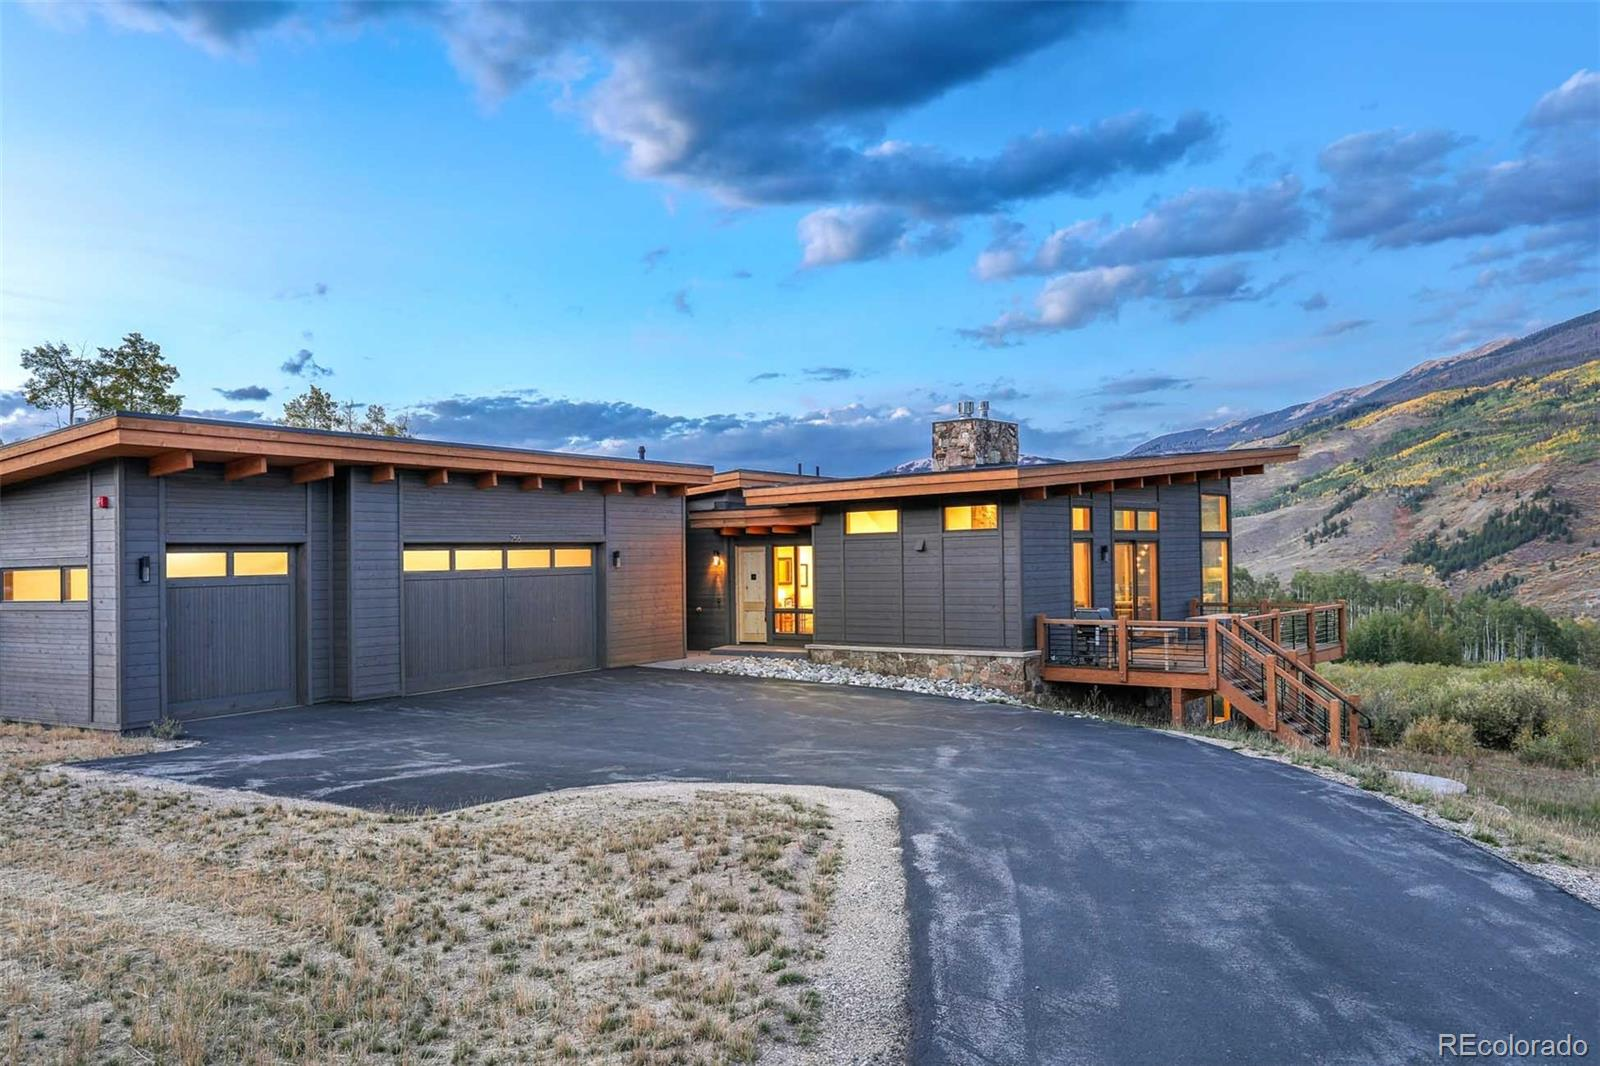 11 Beasley Road - Silverthorne, Colorado